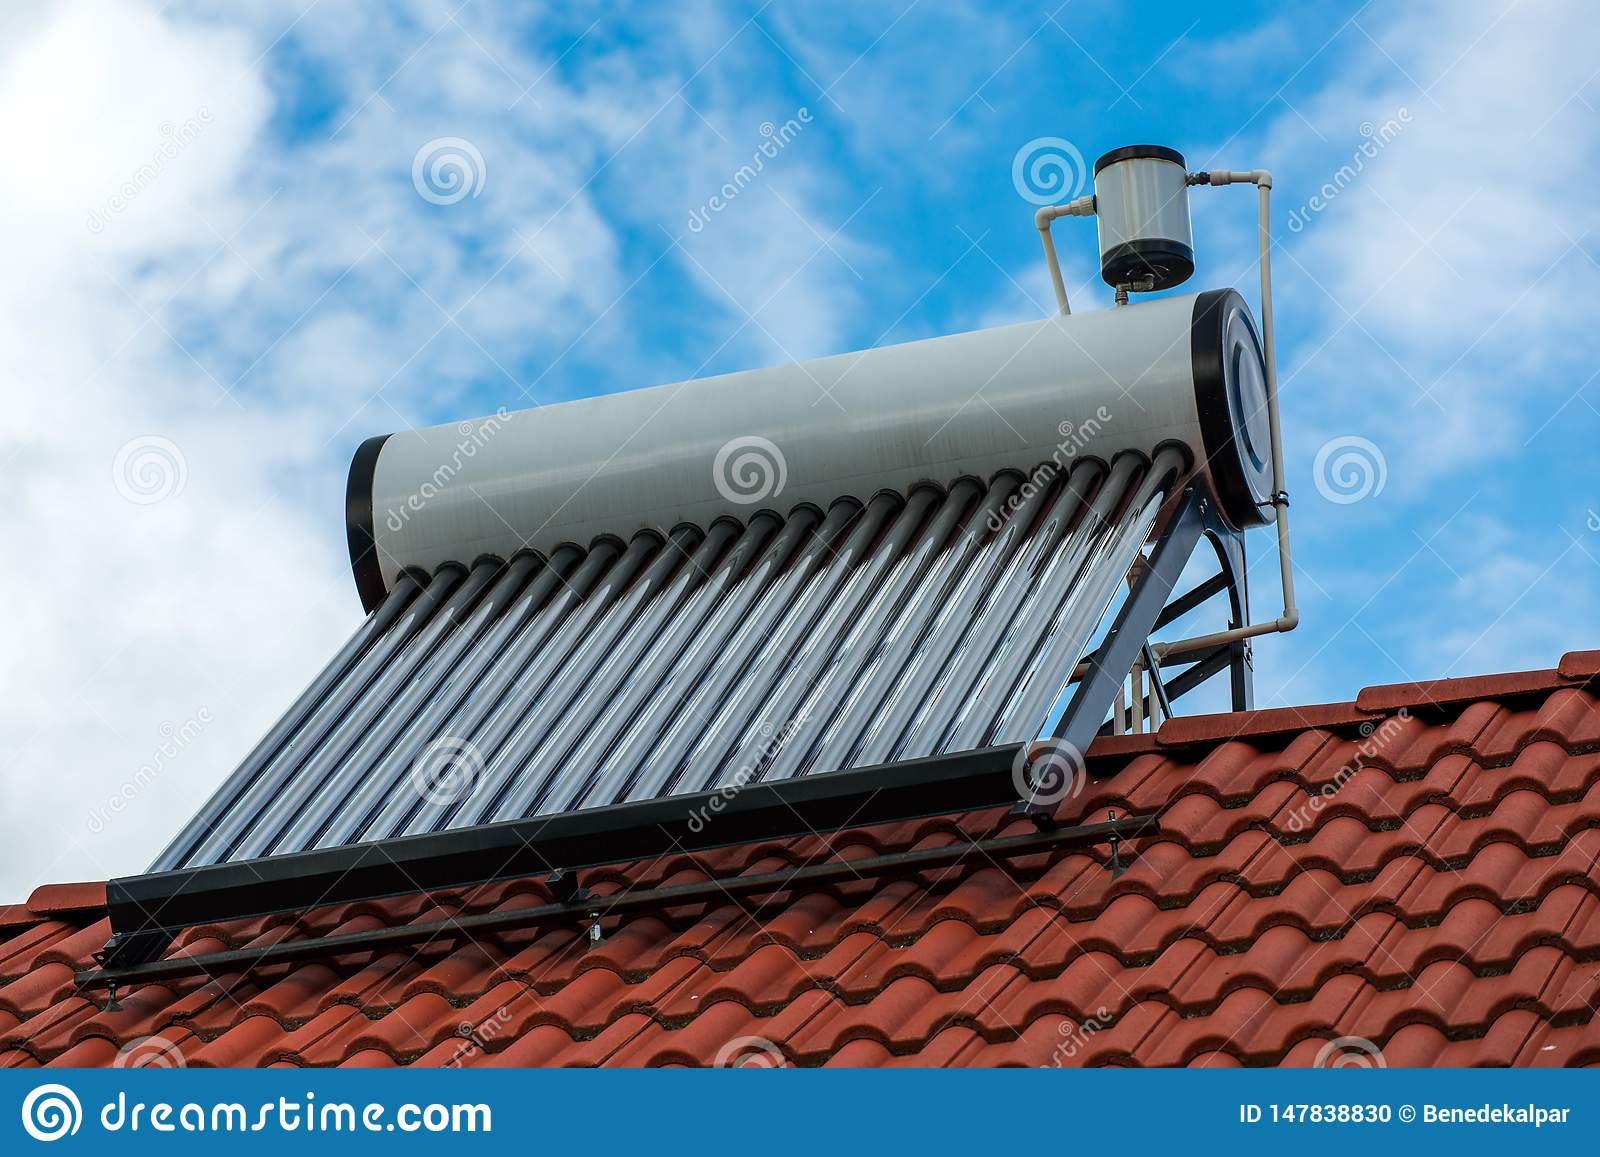 Solar water heater boiler on residentual house rooftop, blue sky with white clouds